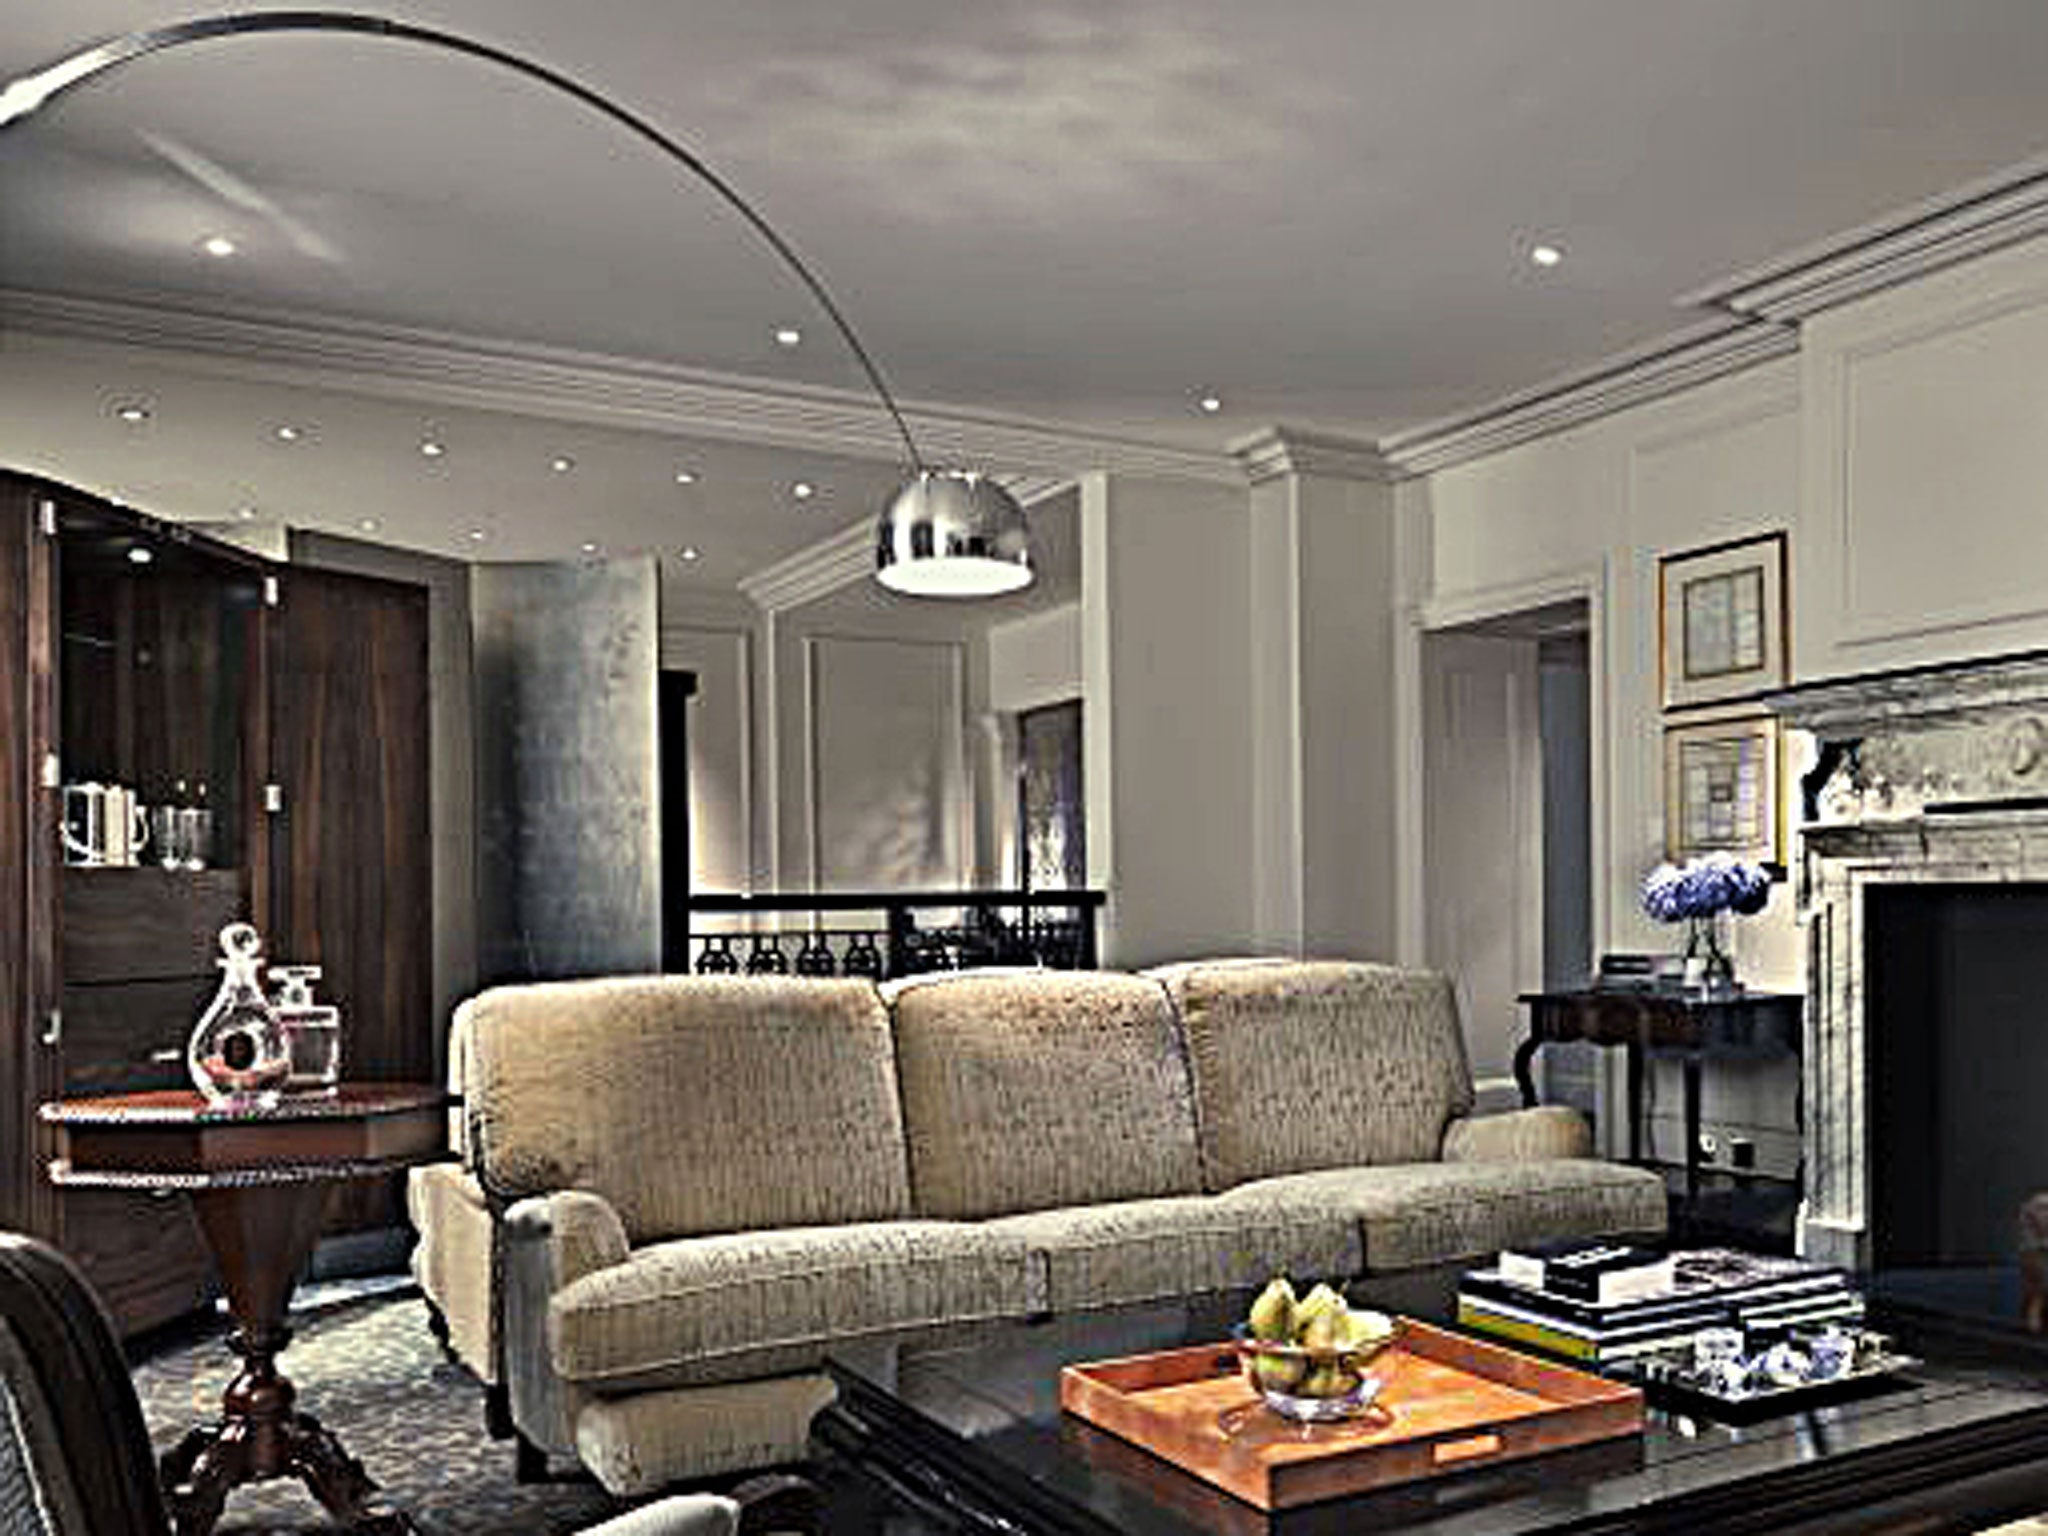 Rosewood, London: A new hotel that puts 'Midtown' on the map